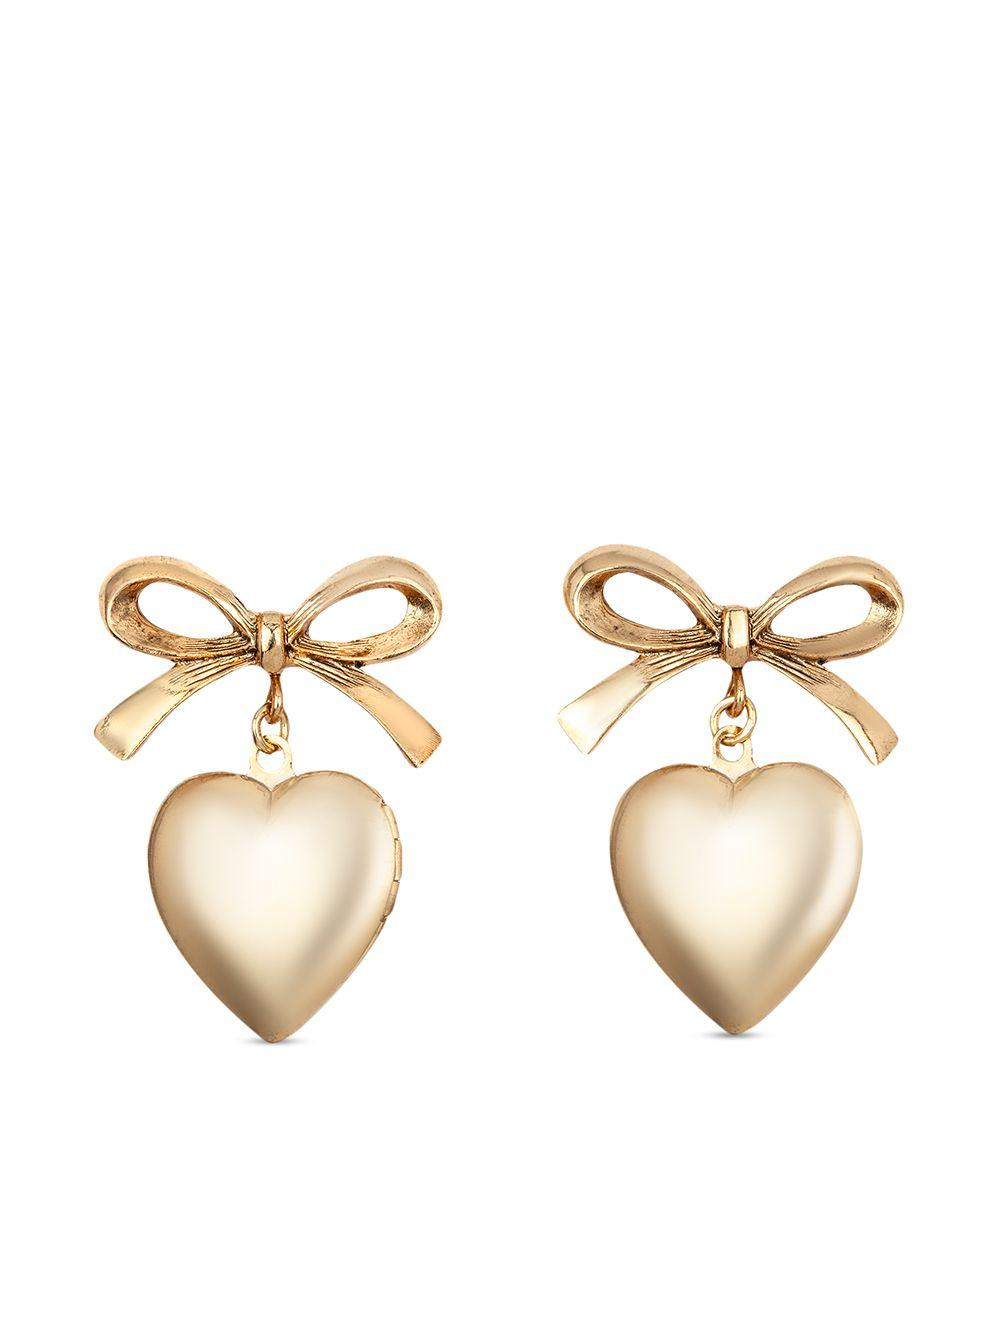 Chriselle Heart And Bow Earrings Item # 111RB55